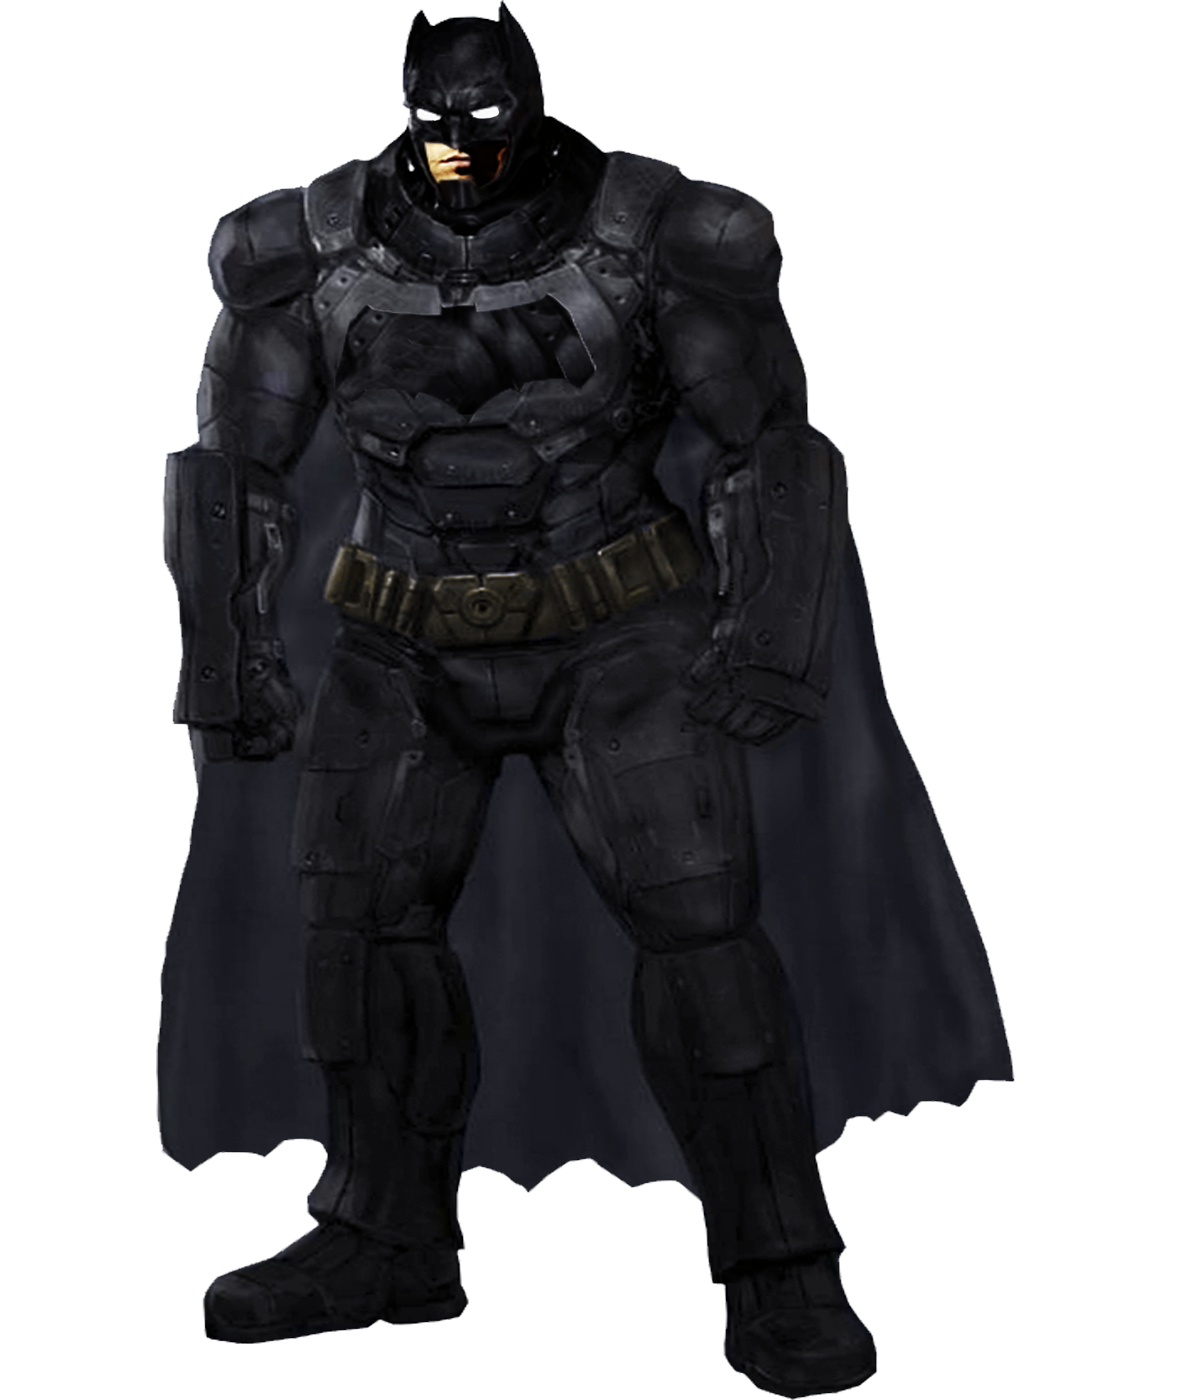 Bat-armor from Dawn of justice by Alexbadass on DeviantArt